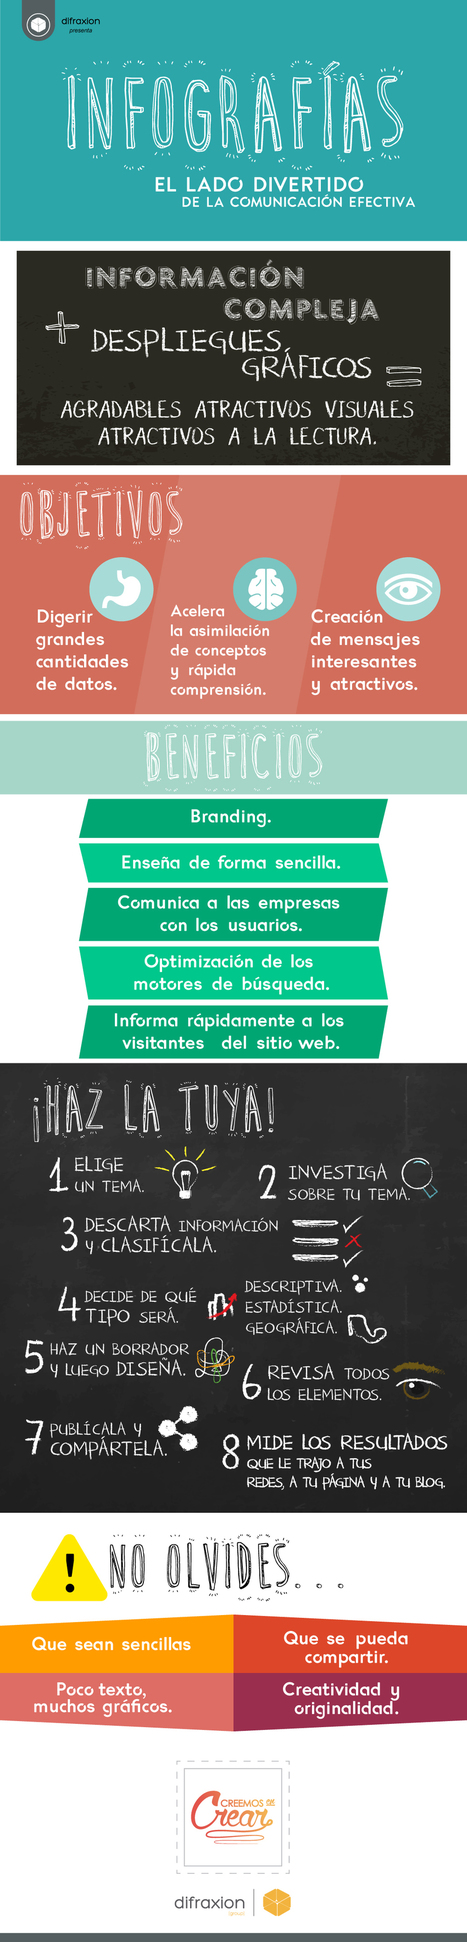 Infografías: el lado divertido de la Comunicación Efectiva #infografia #infographic #marketing | Tutoriales y guias | Scoop.it